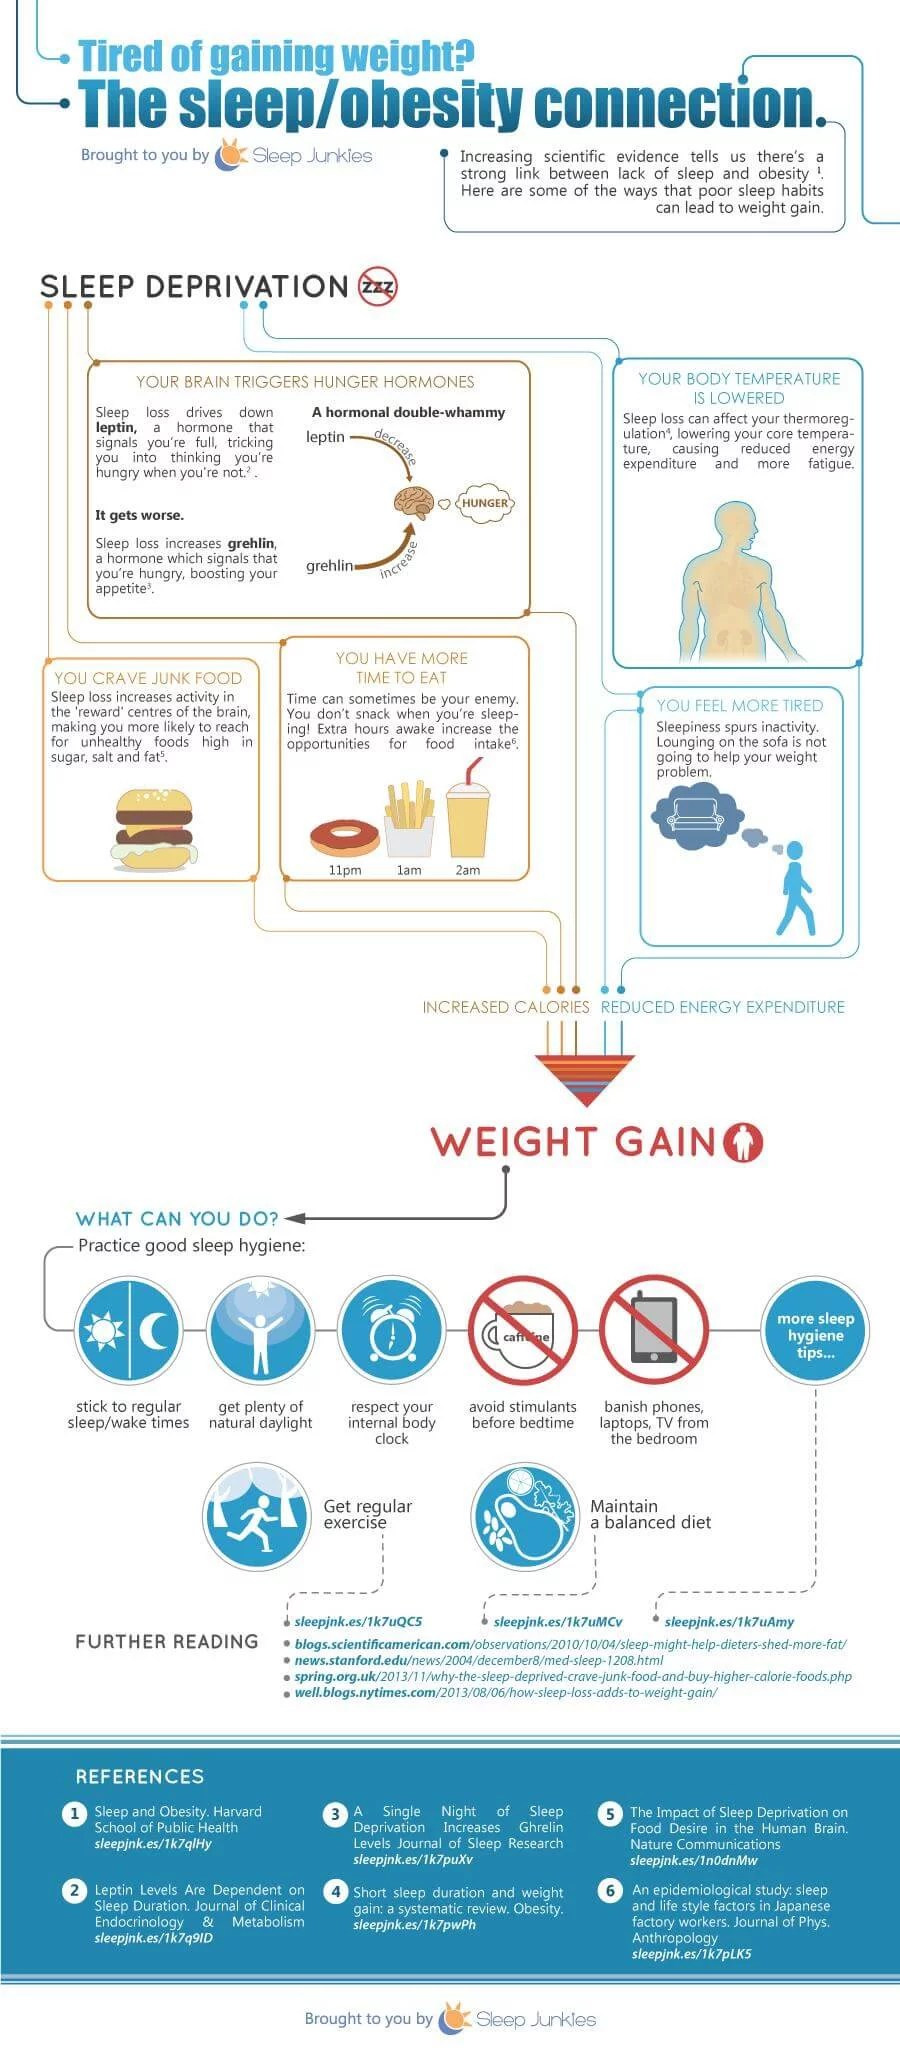 Sleep Junkies Tired of gaining weight infographic